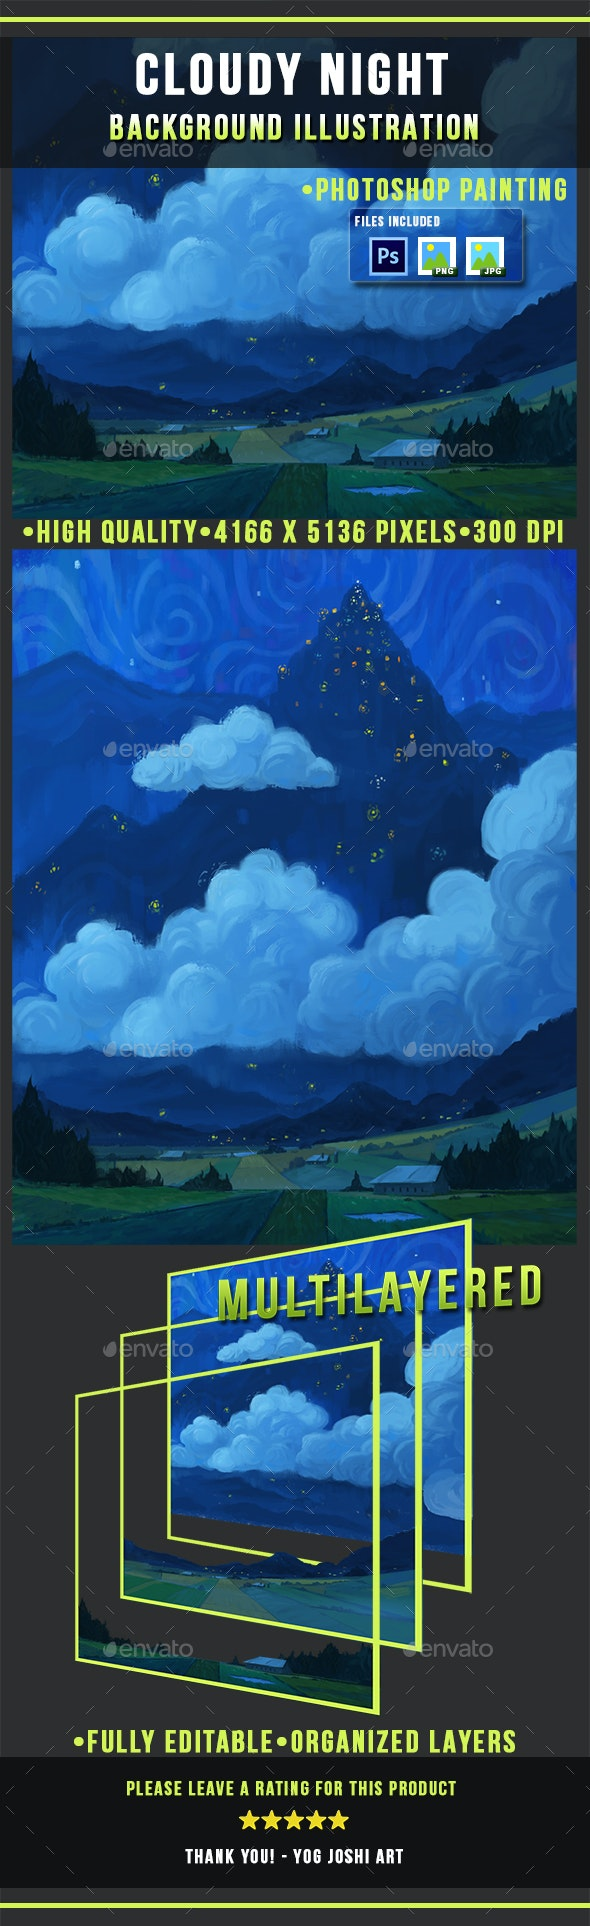 Cloudy Night - Painting - Photoshop - Scenes Illustrations